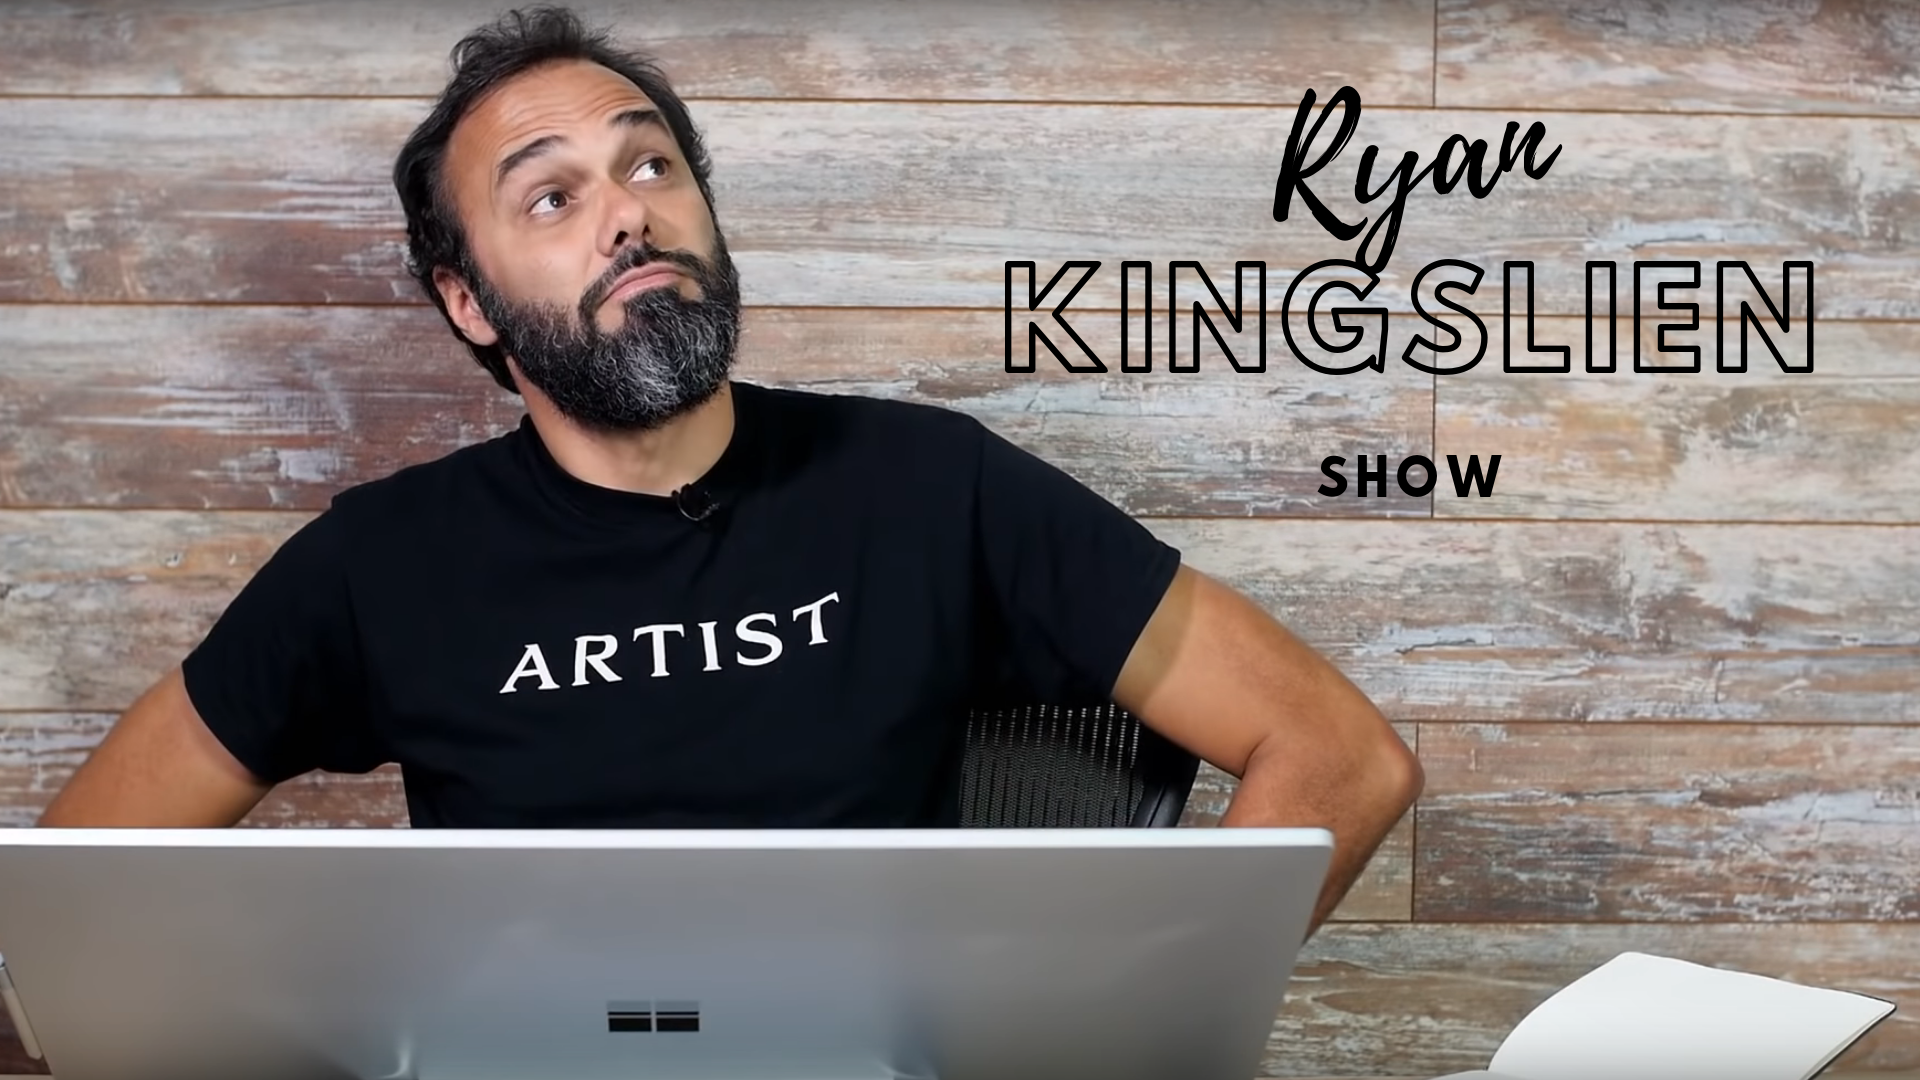 Ryan Kingslien Show 1